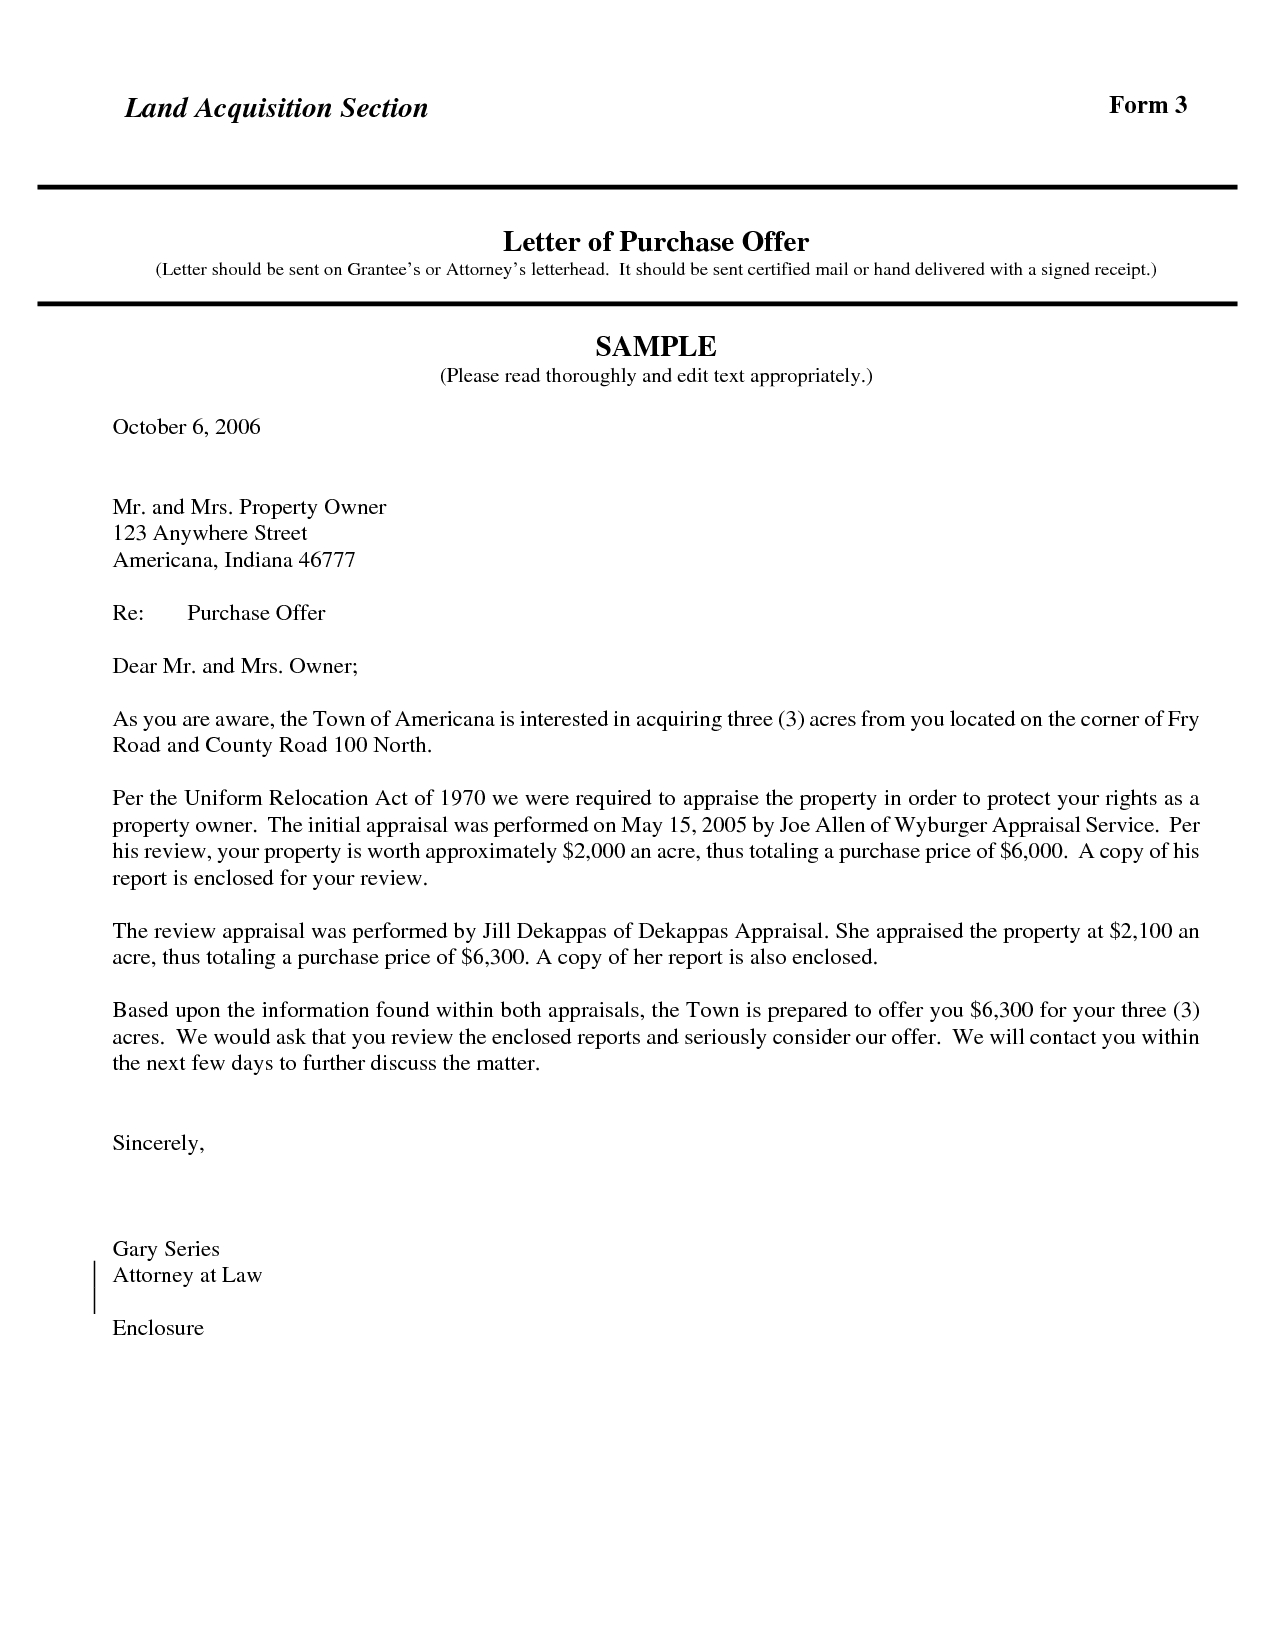 Land Purchase Offer Letter Template - Best S Template Proposal Property Buying Letter Sampletent